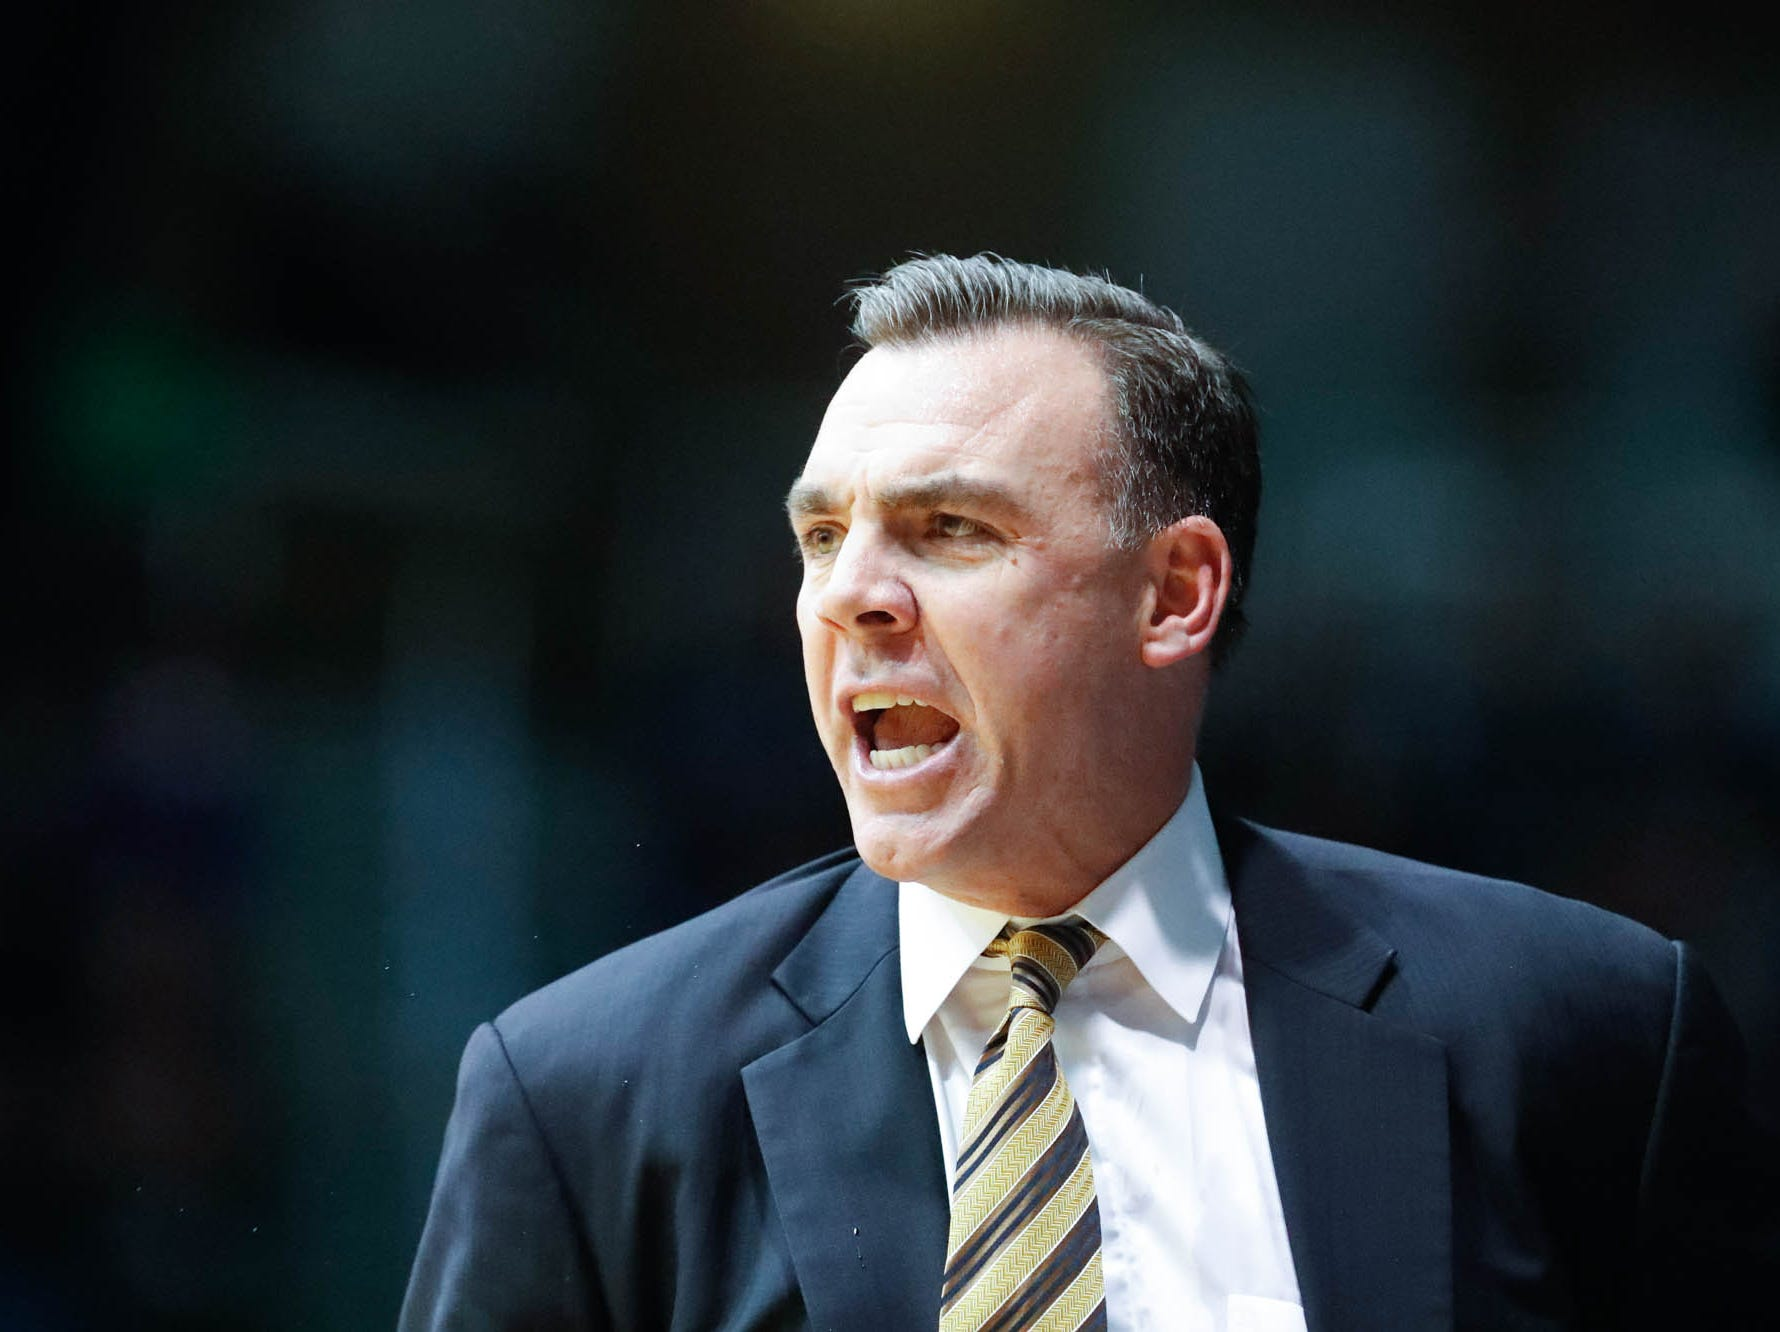 UC Irvine's Head Coach, Russell Turner, reacts to a call during a game between Butler University and UC Irvine, at Hinkle Fieldhouse on Friday, Dec. 21, 2018.